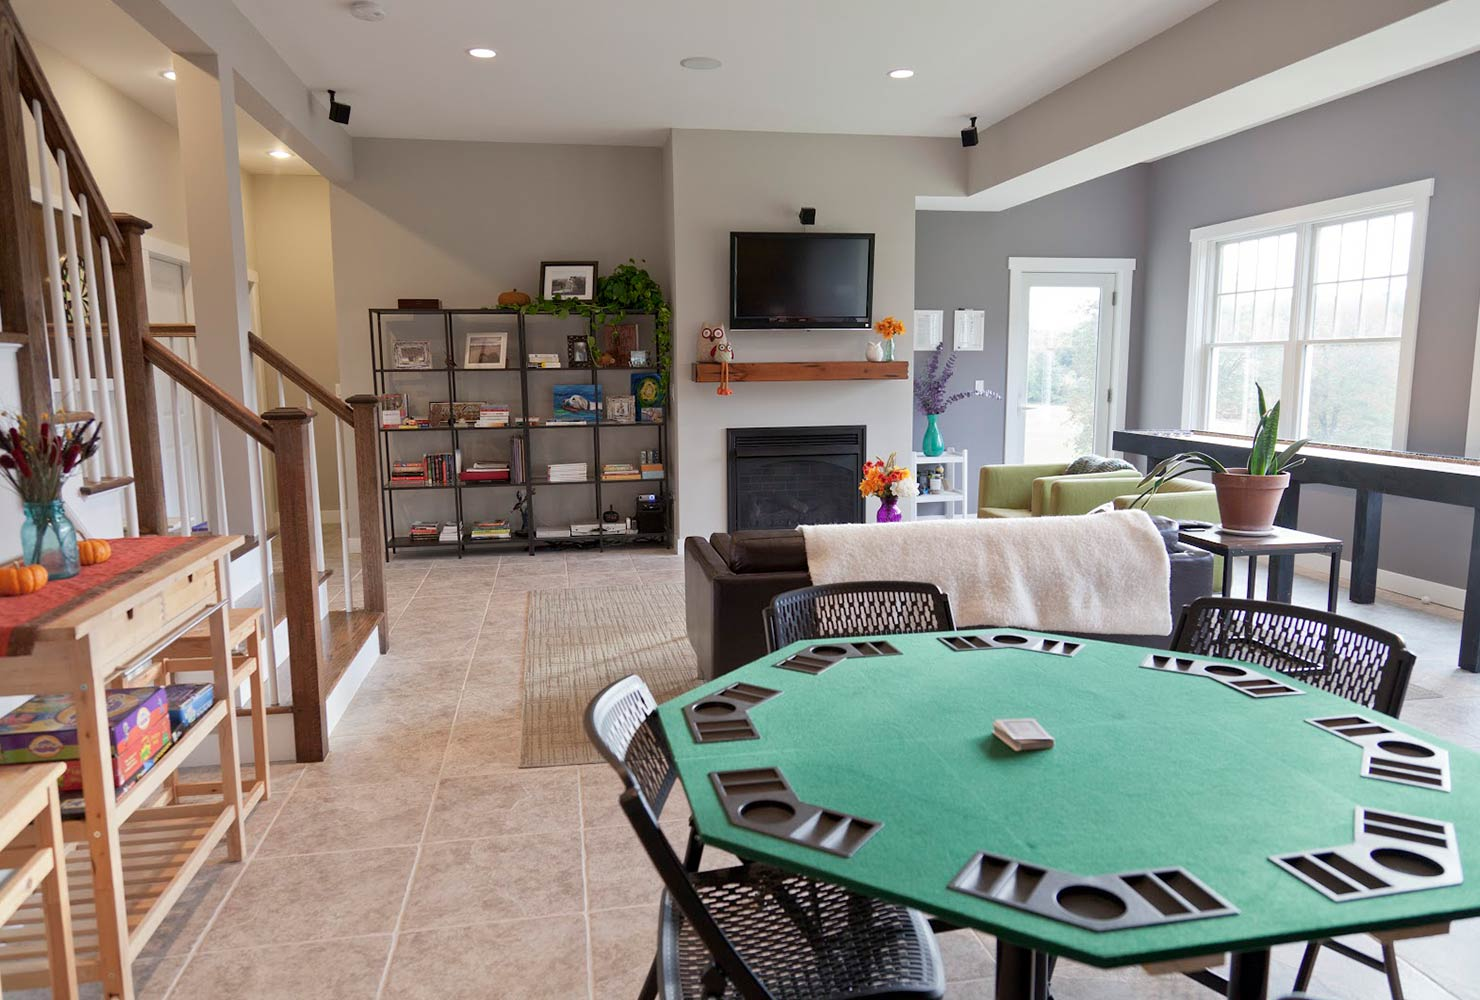 There are some surprising ways to accomplish building on to your home. 38 Best Game Room Ideas For Any Entertaining | Shutterfly